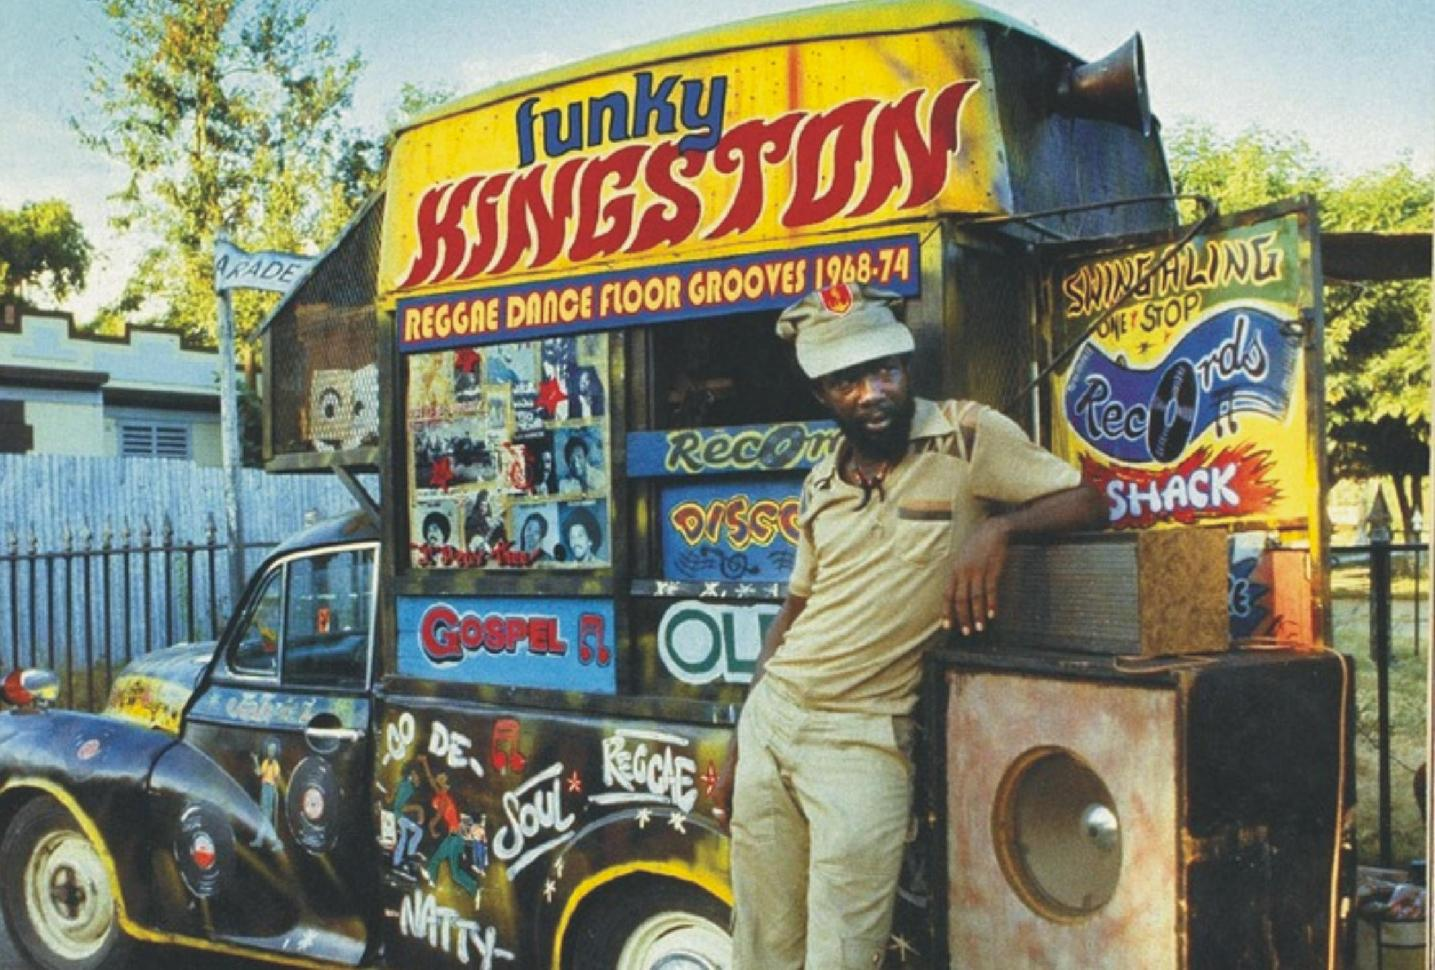 You just know that this Jamaican soundsystem rocked, don't you?